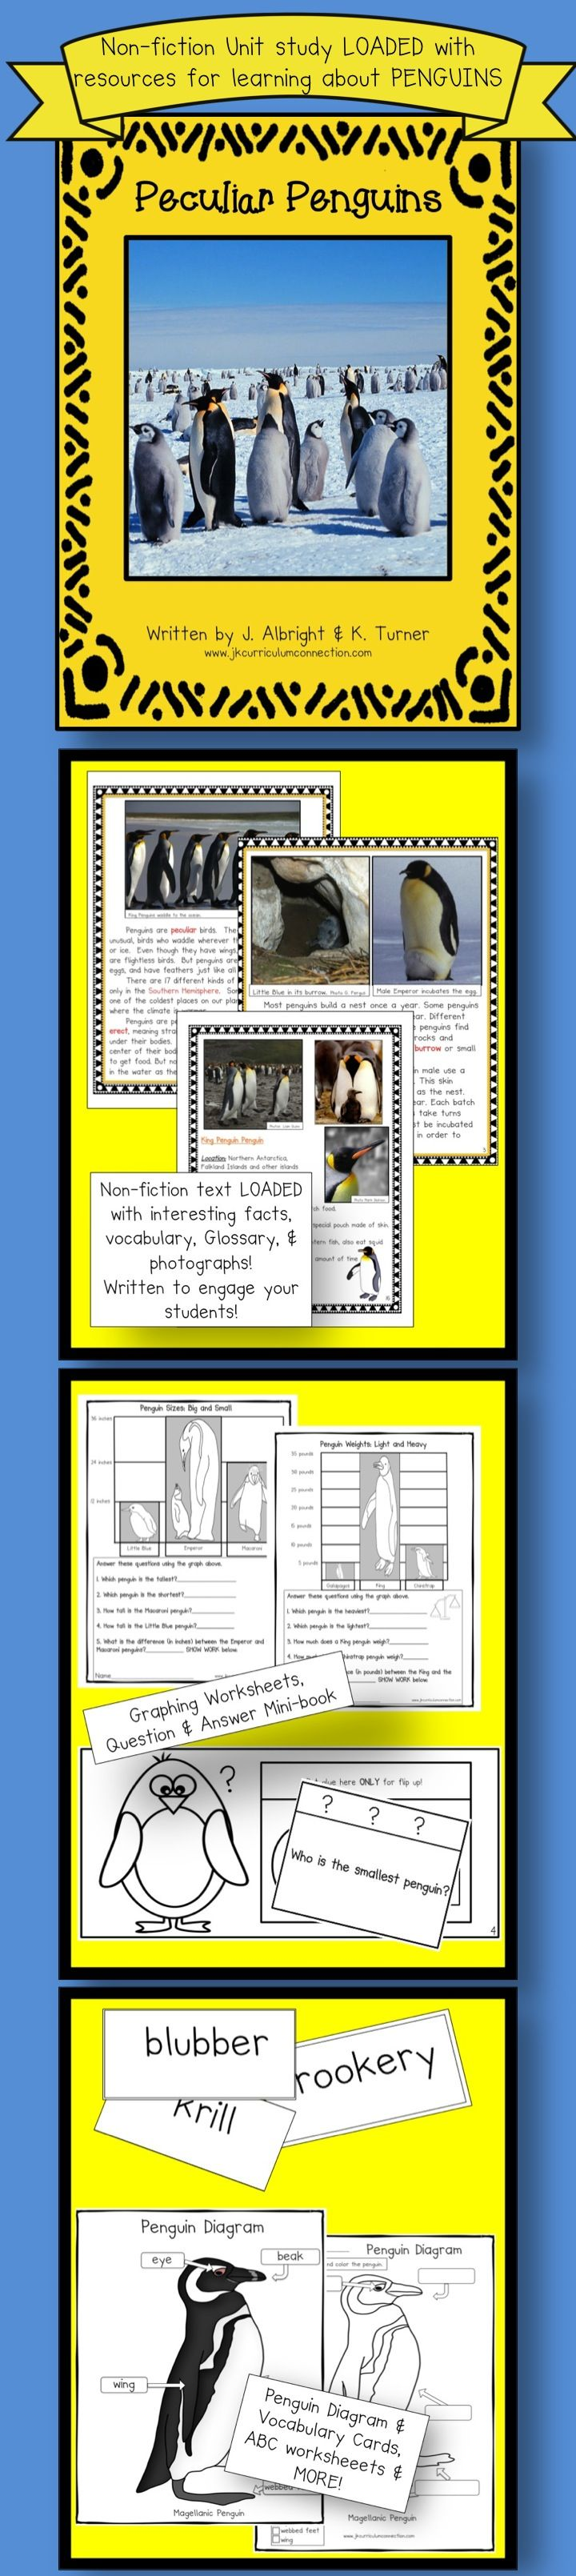 This penguin packet has a Shared Reading Non-fiction book that uses real photgraphs to support the detailed information. Loaded with interesting facts about penguins that has been written to engage children! Vocabulary work, Little Readers, Report Writing, Compare & Contrast, Fact & Opinion, Math story problems, graphing & MORE! 108 pages  $8.75 http://www.teacherspayteachers.com/Product/Penguins-Peculiar-Penguins-Non-fiction-Penguin-Unit-CCSS-968624